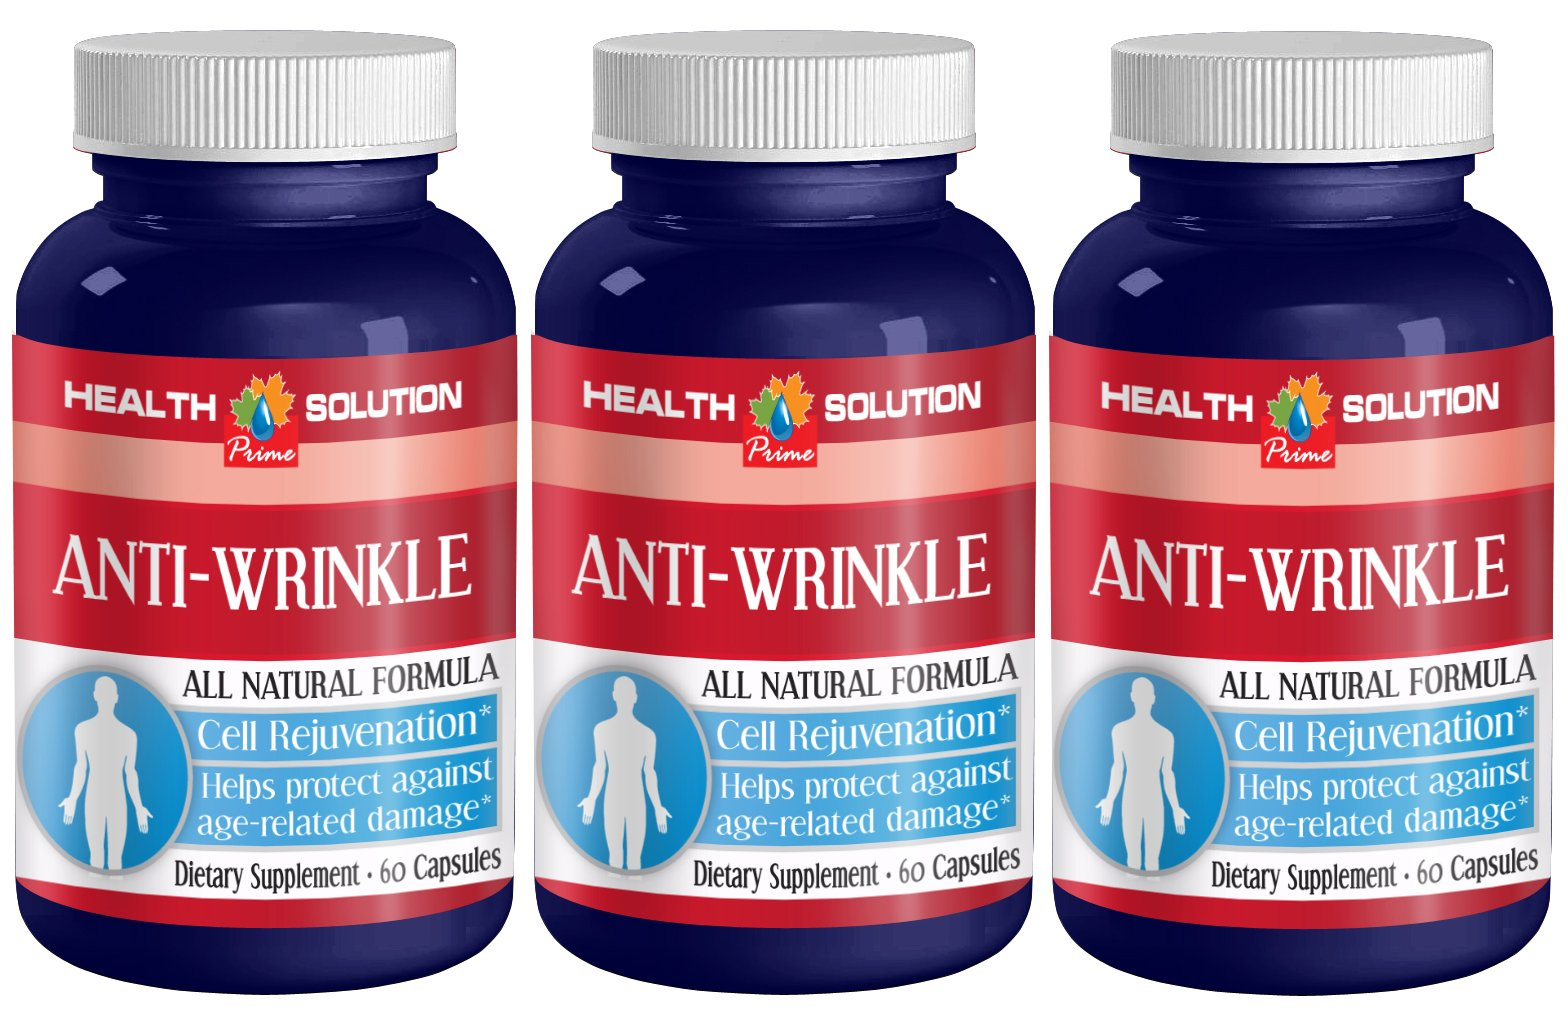 Collagen vitamin A - ANTI-WRINKLE ANTI-AGING COMPLEX - Skin radiance dietry supplement (3 Bottles 180 Capsules)